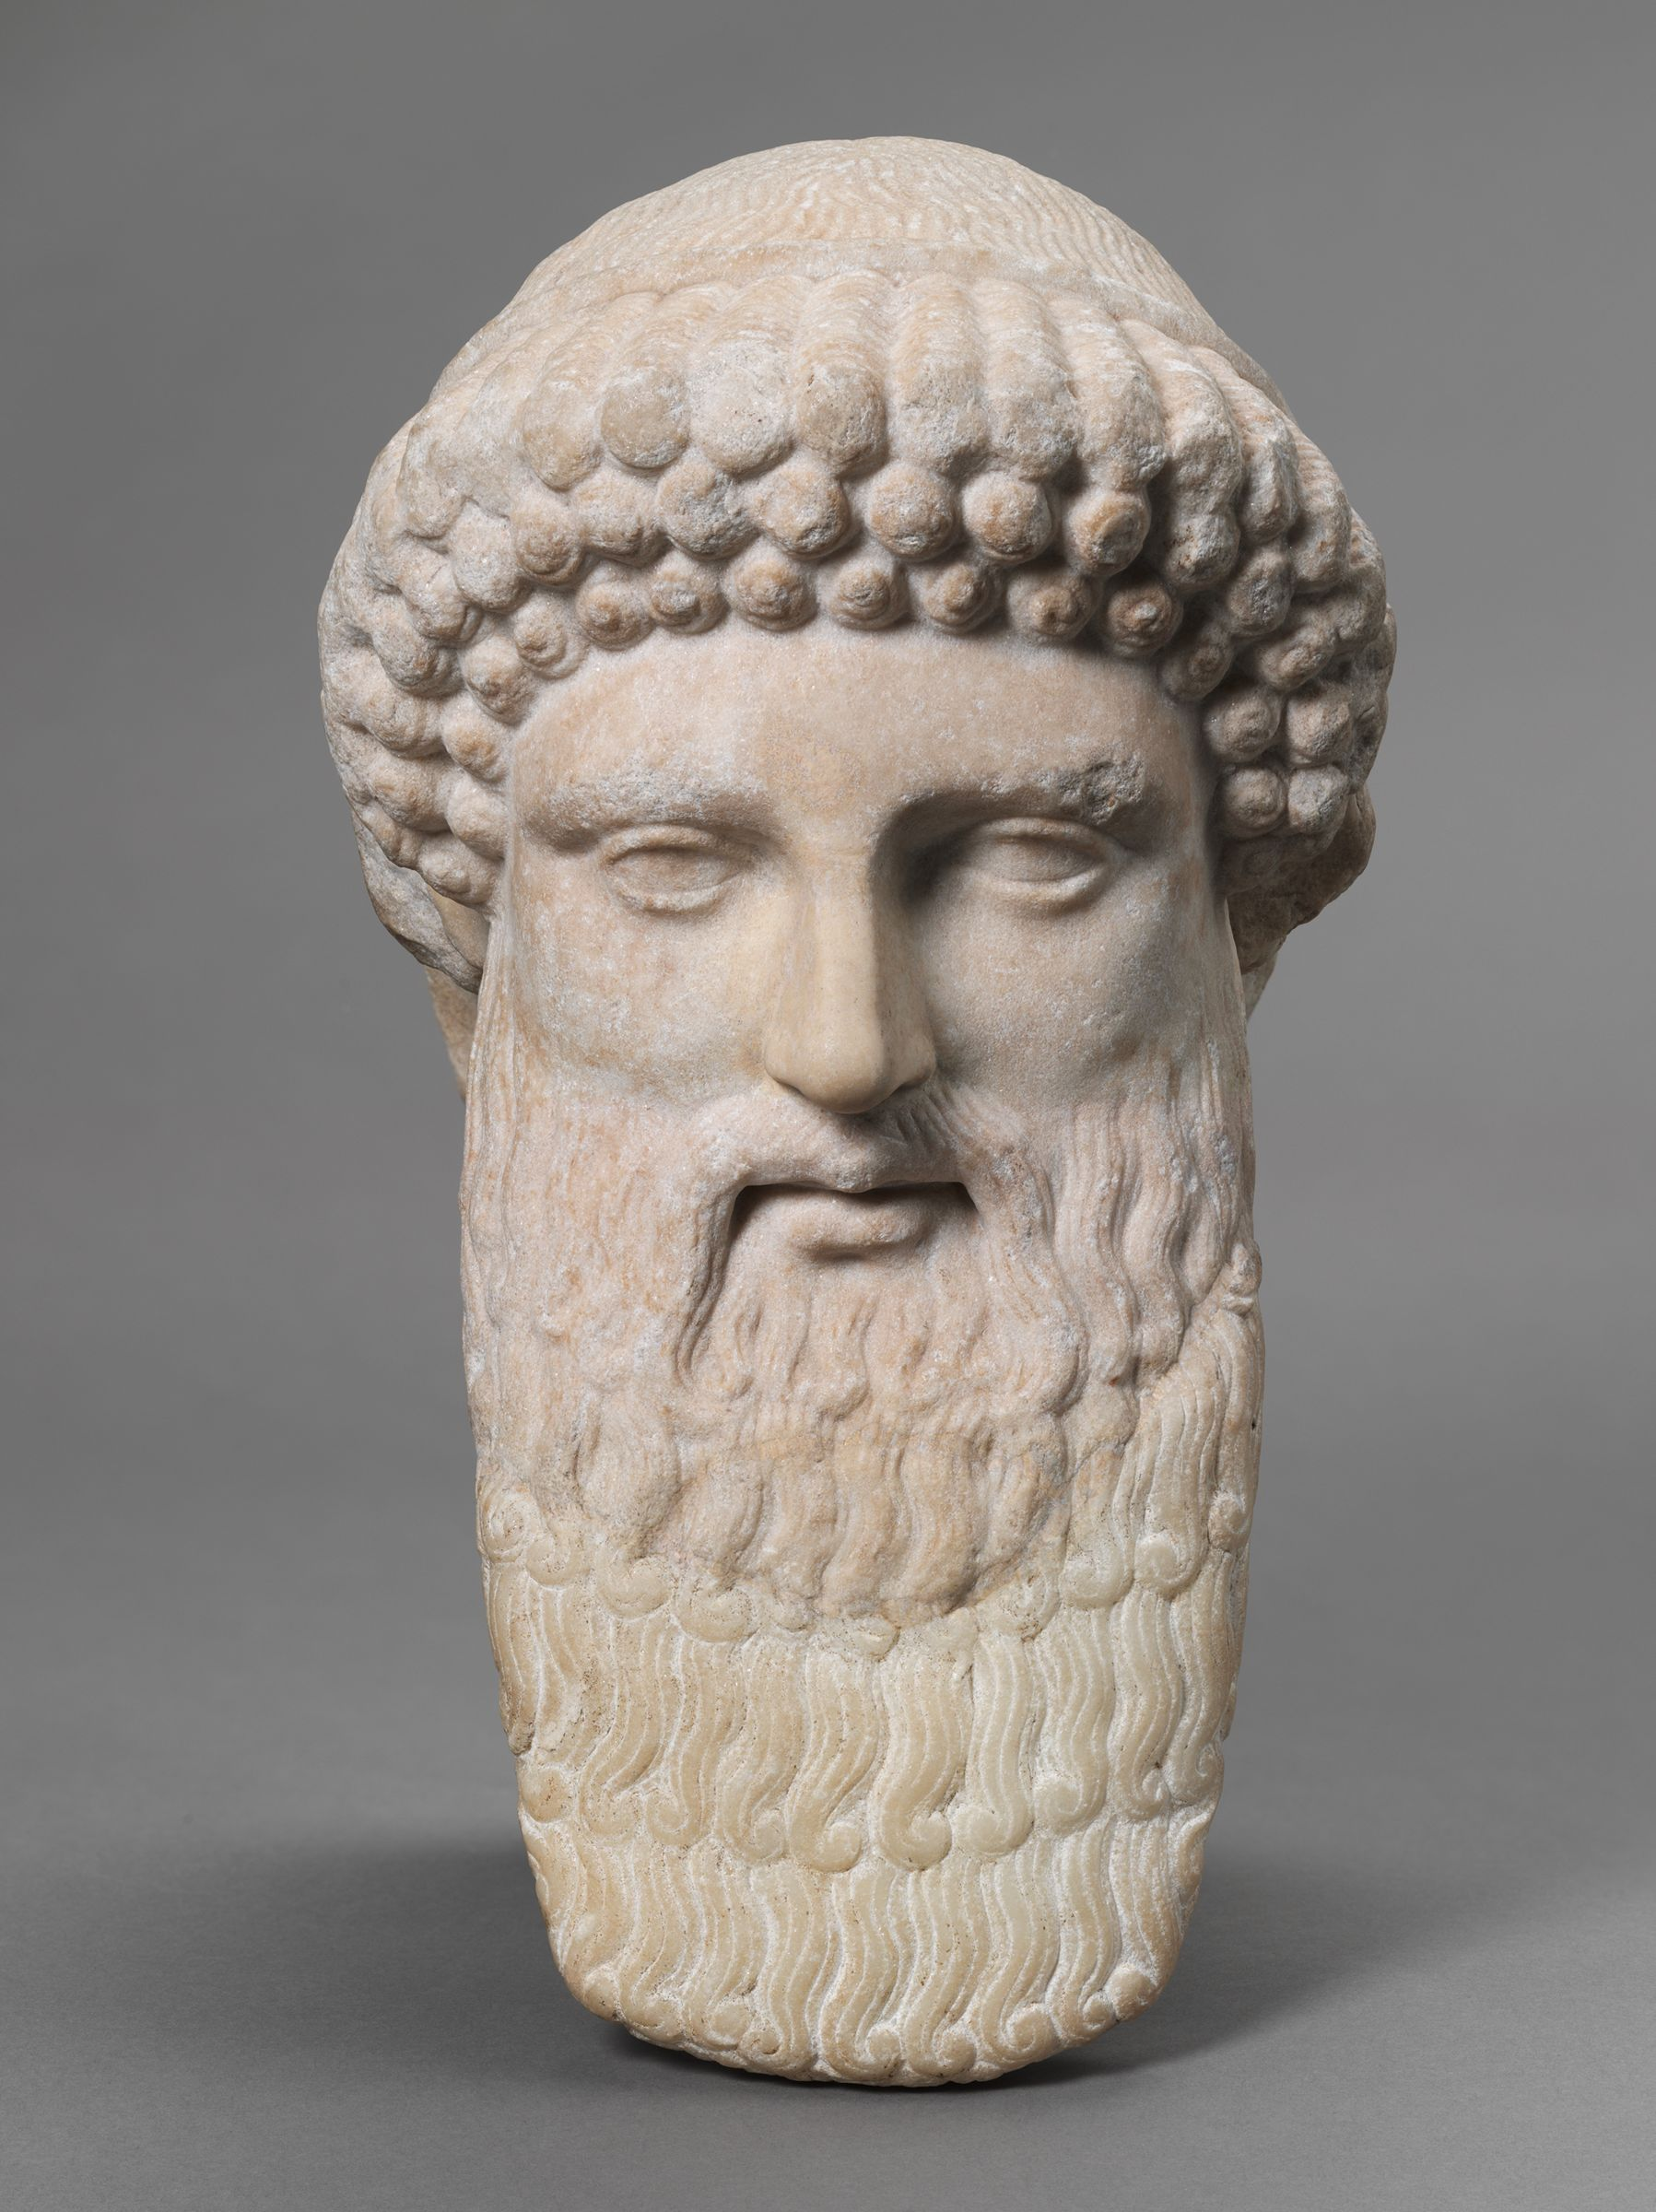 From the Harvard Art Museums' collections Head of Hermes